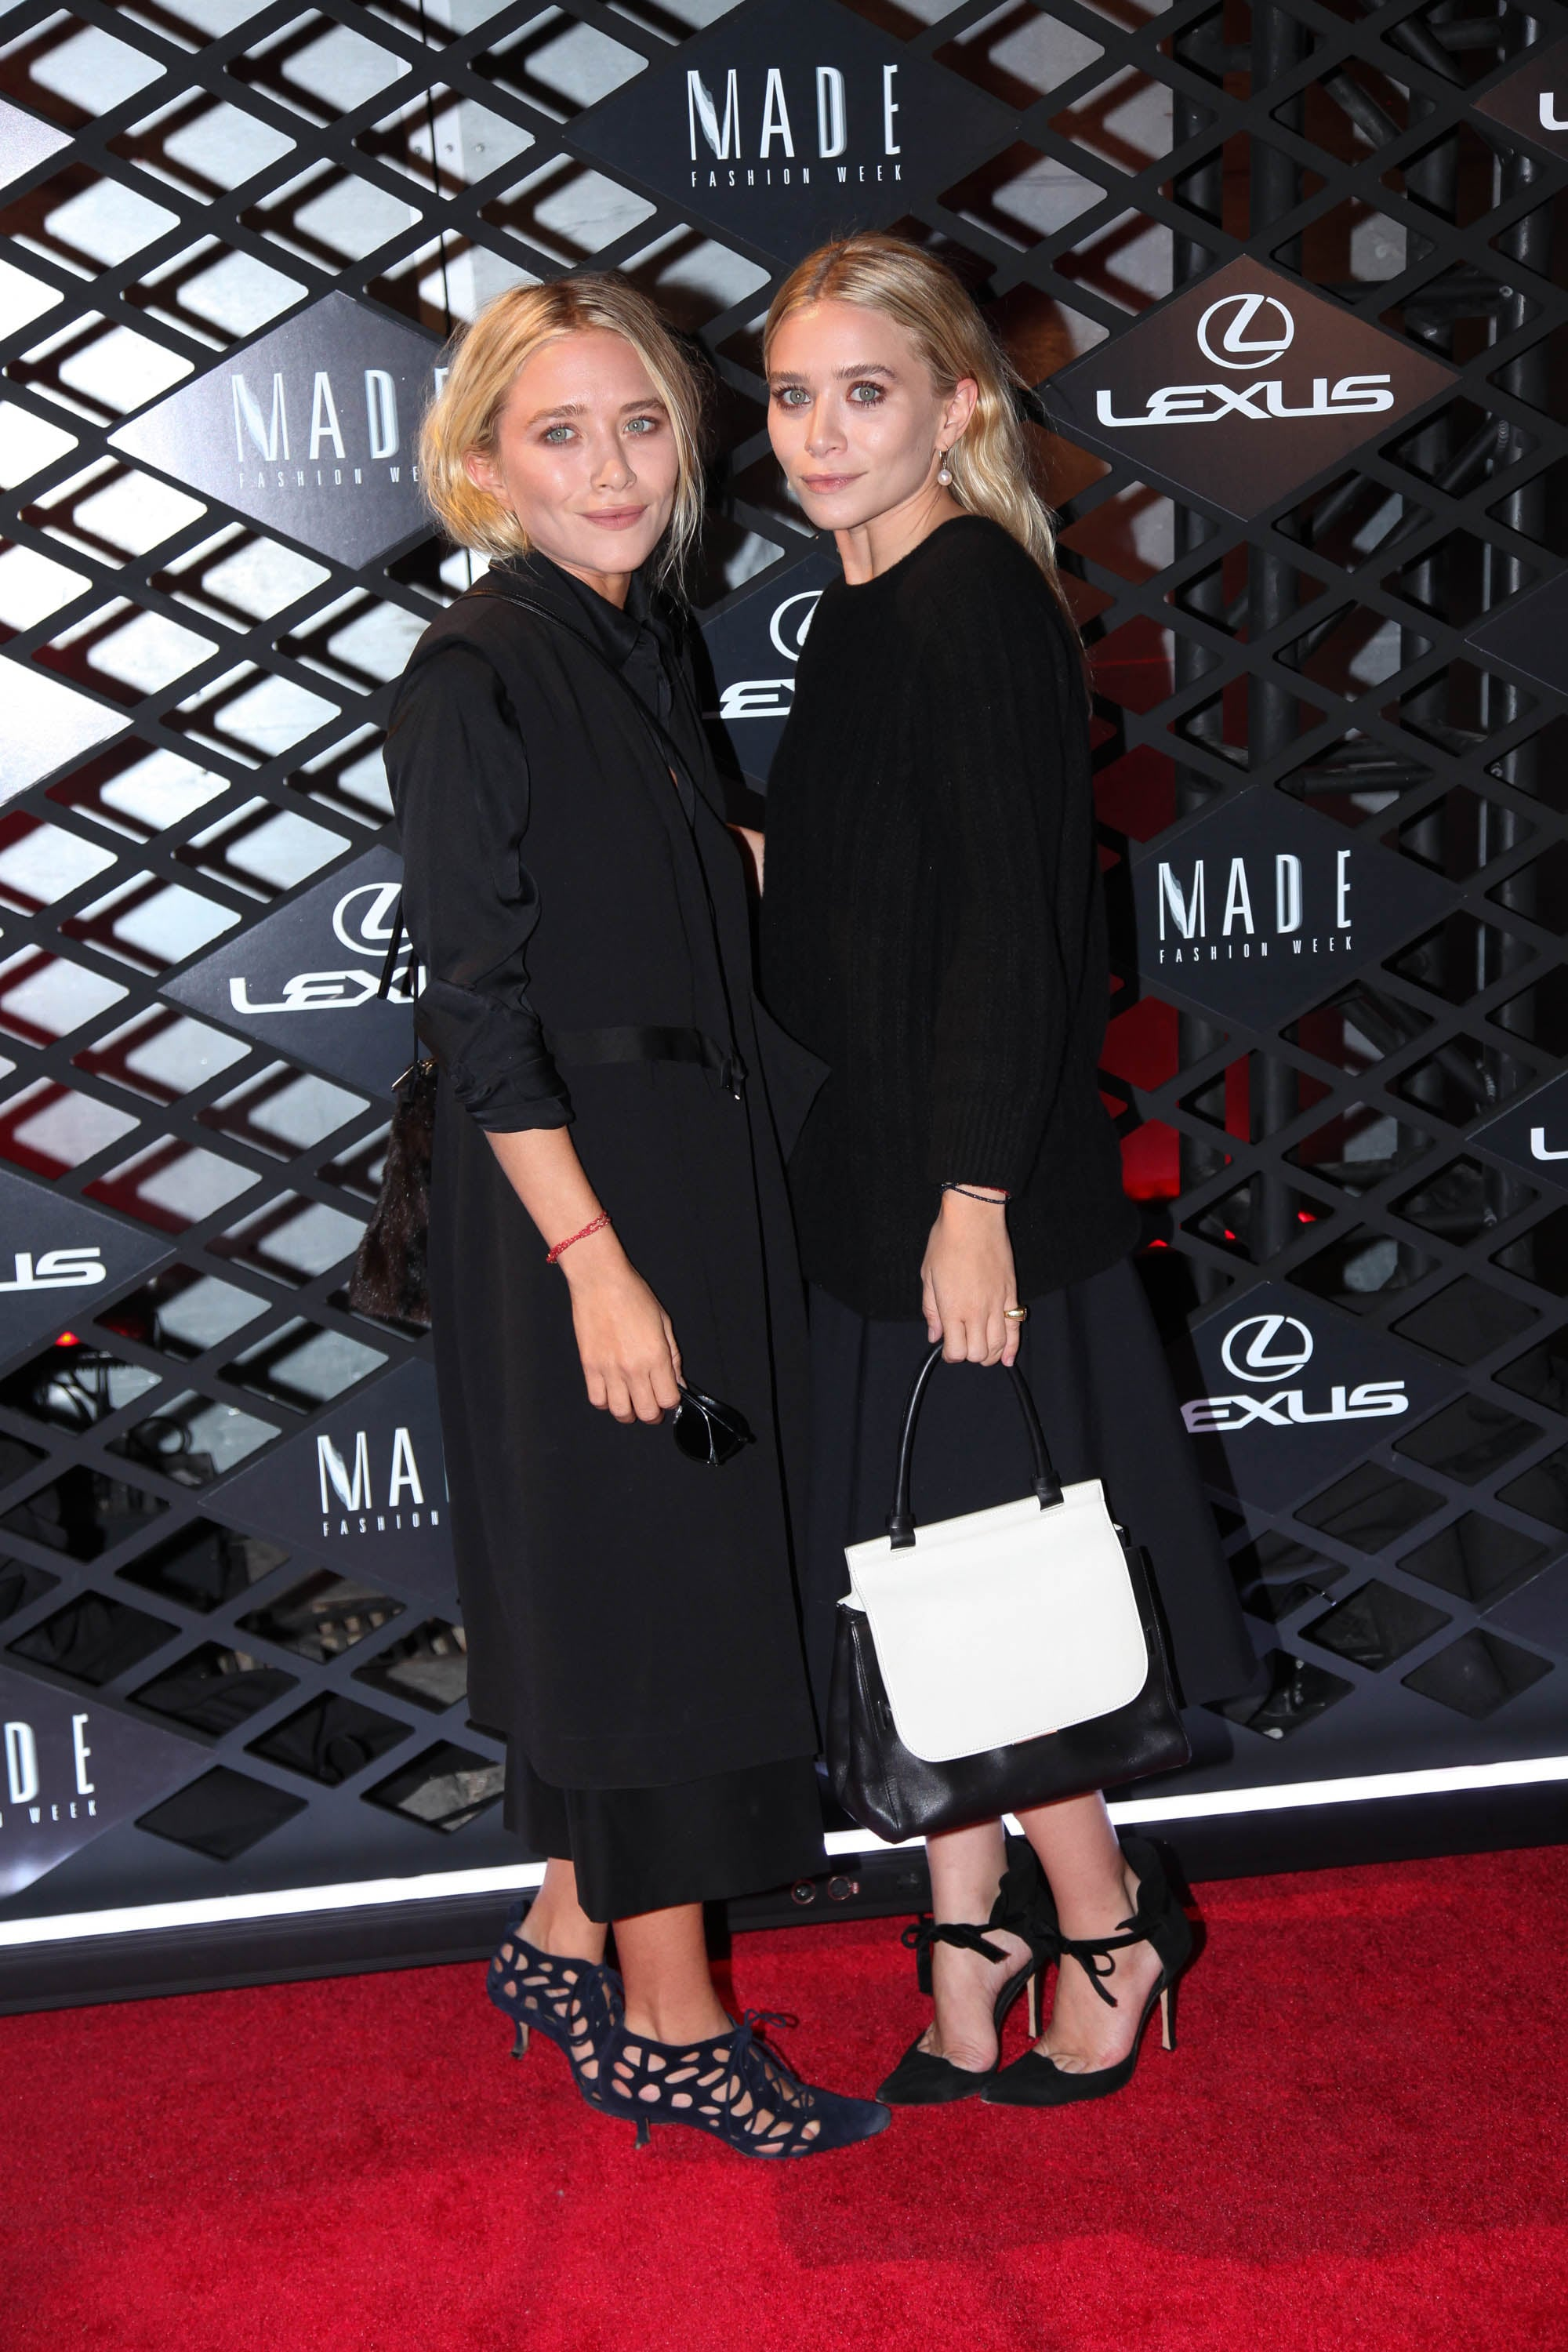 SJP and the Olsen Twins Go Dark During Fashion Week